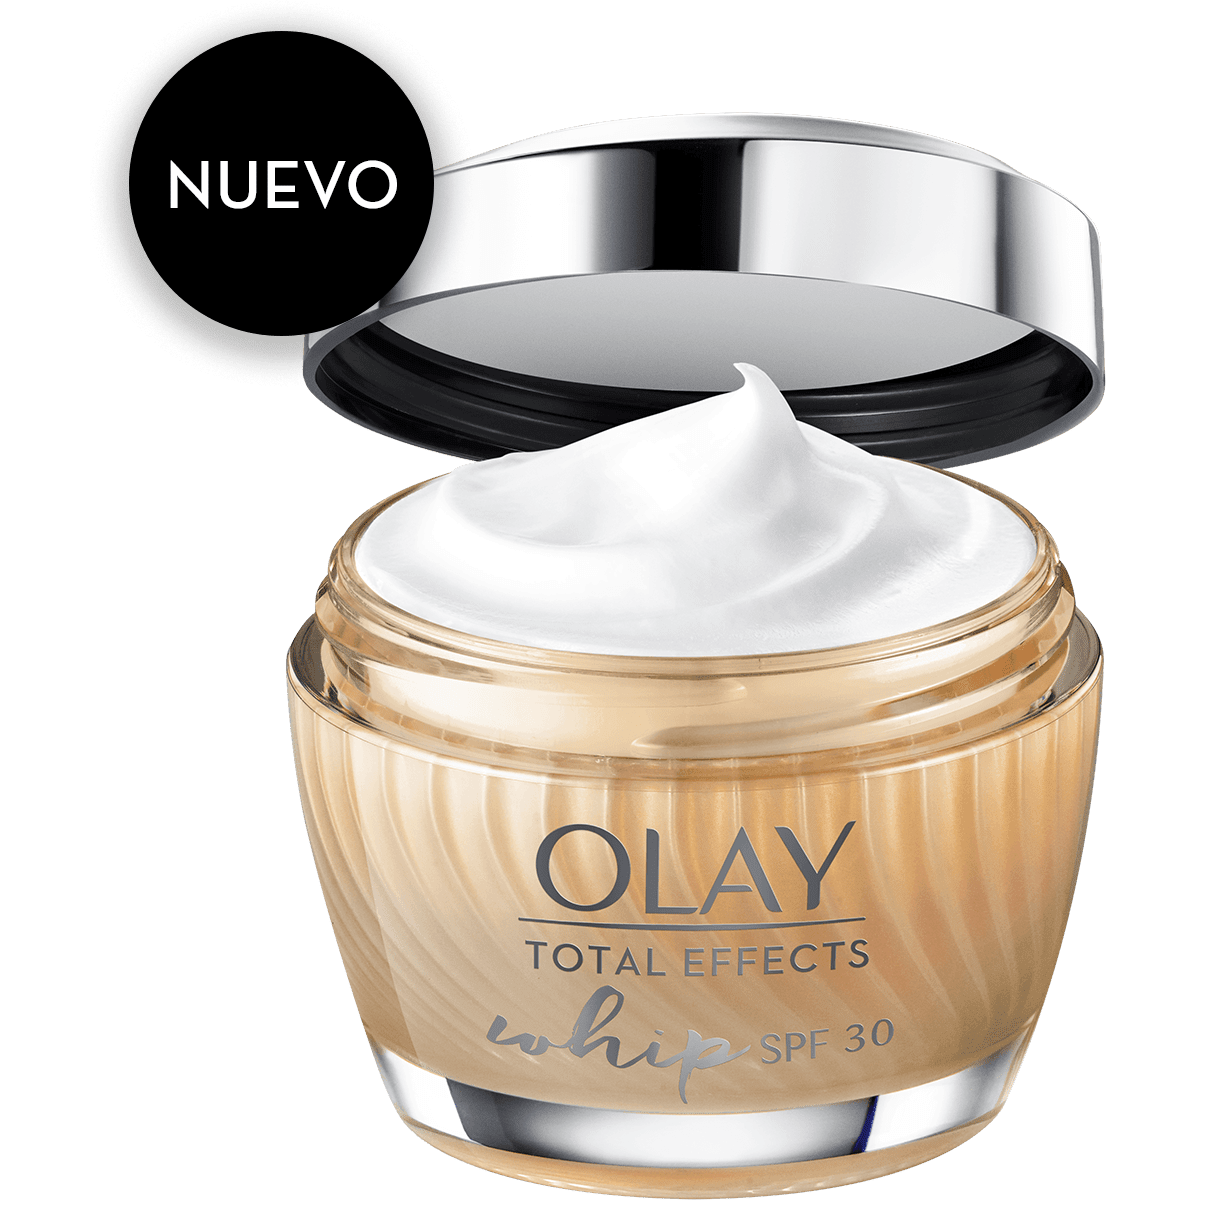 Olay Total Effects SPF 30 Whip Face Moisturiser